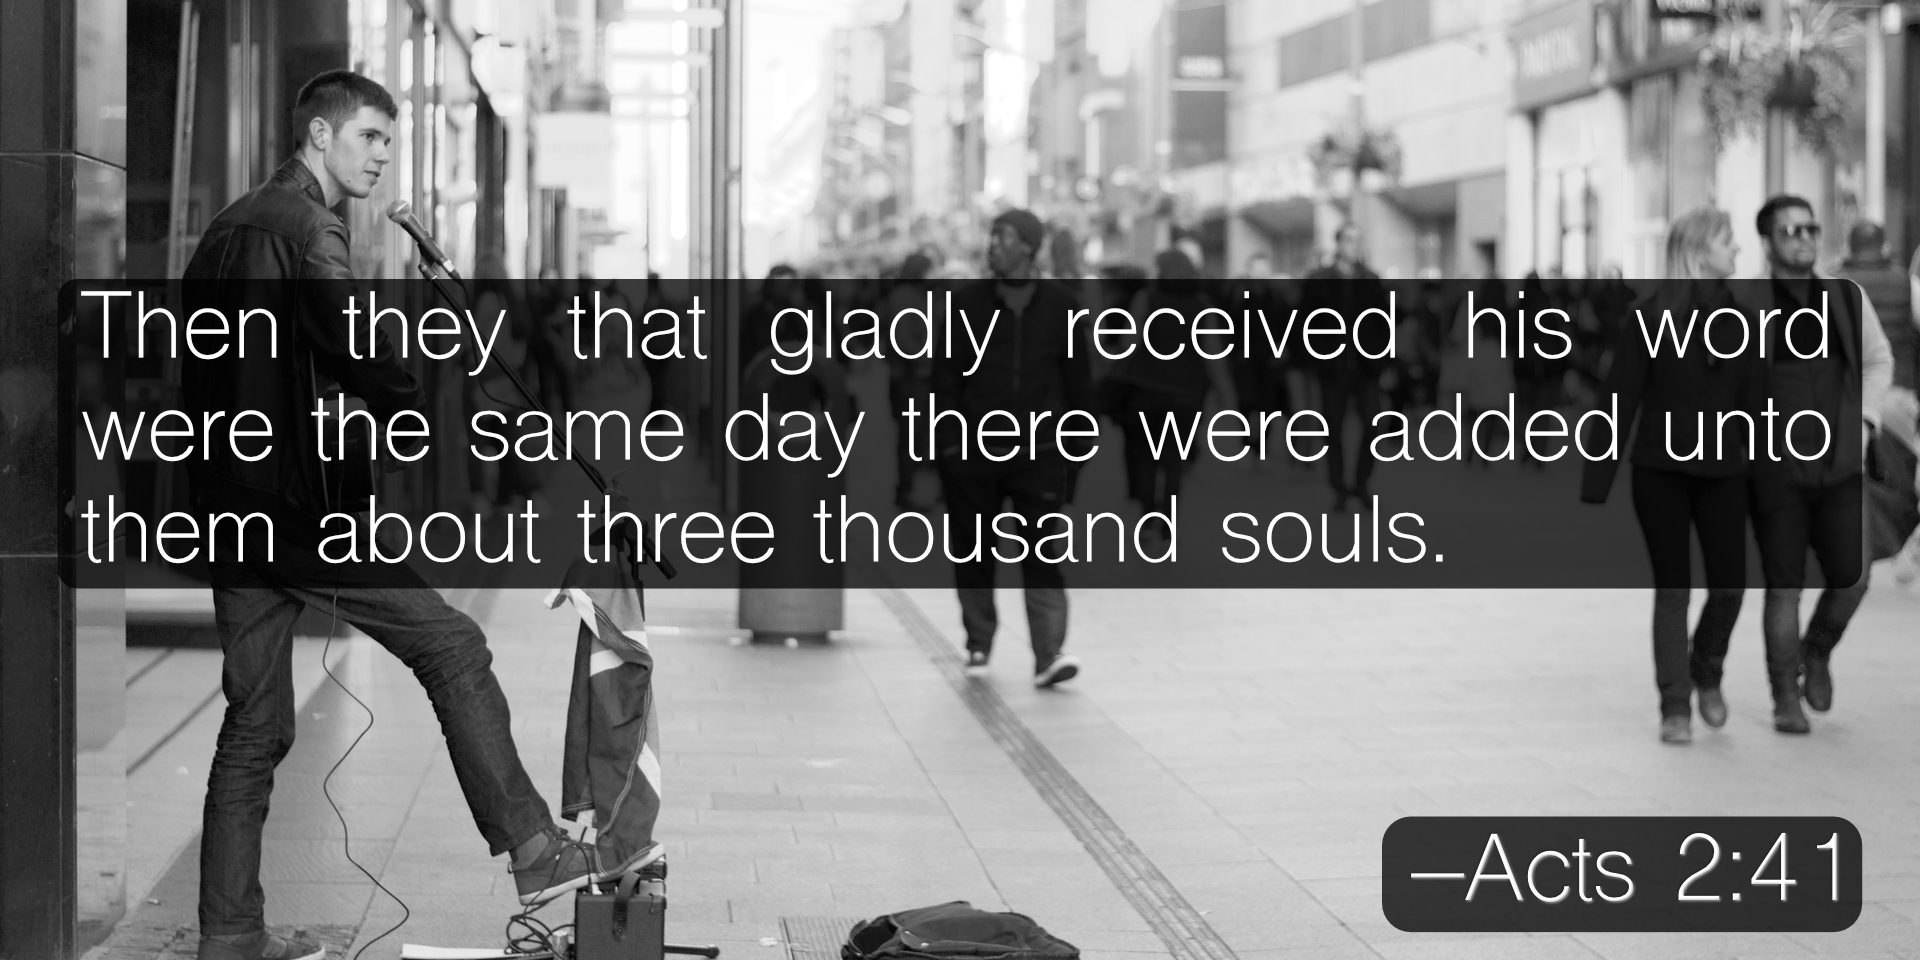 Then they that gladly received his word were the same day there were added unto them about three thousand souls. –Acts 2:41